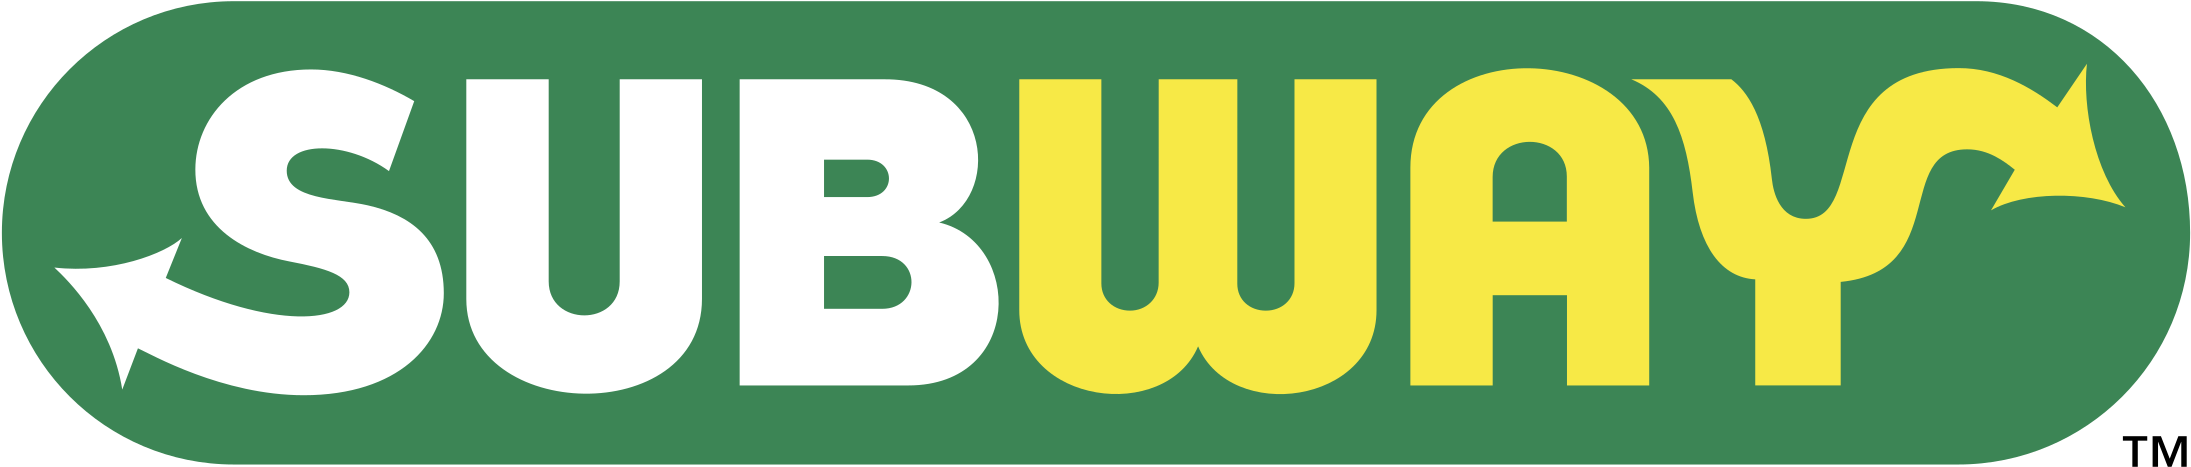 subway-11-logo-png-transparent